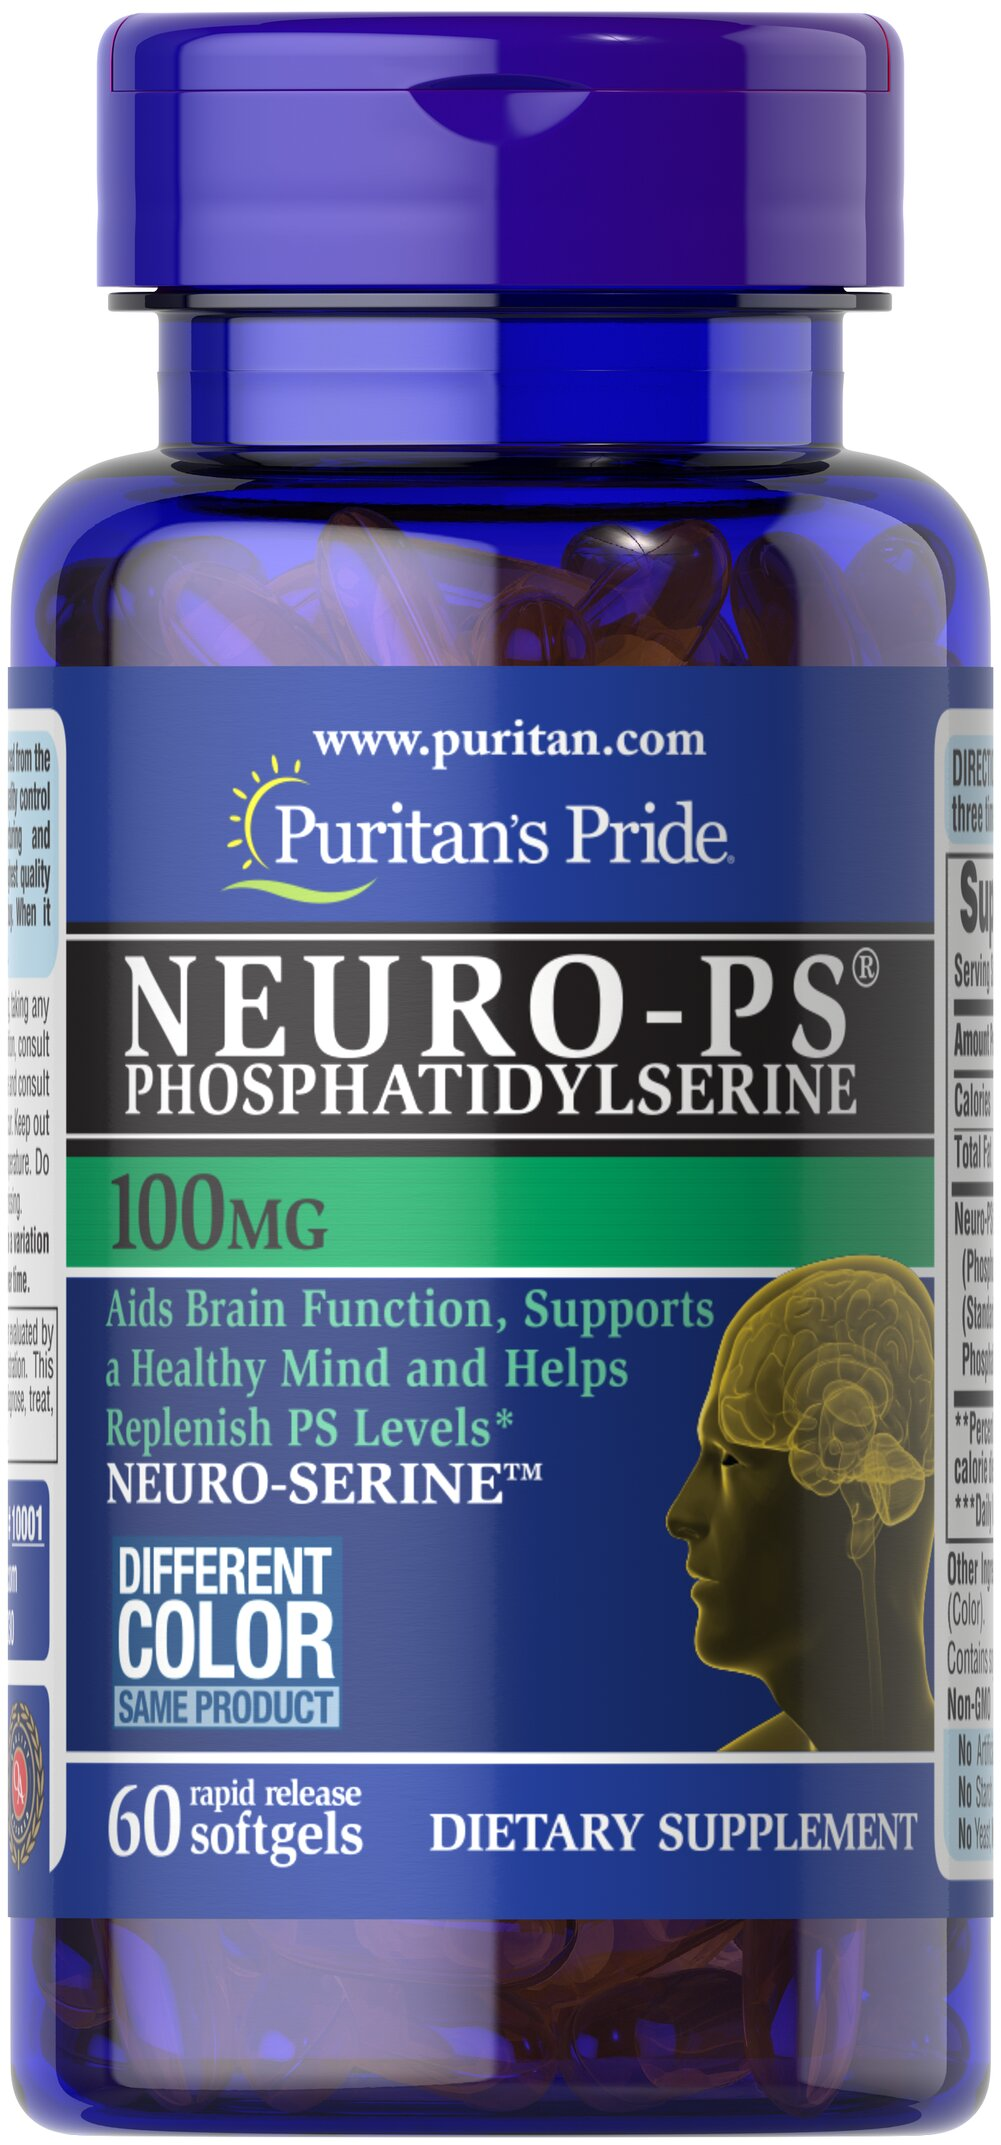 Neuro-PS (Phosphatidylserine) 100 mg Thumbnail Alternate Bottle View